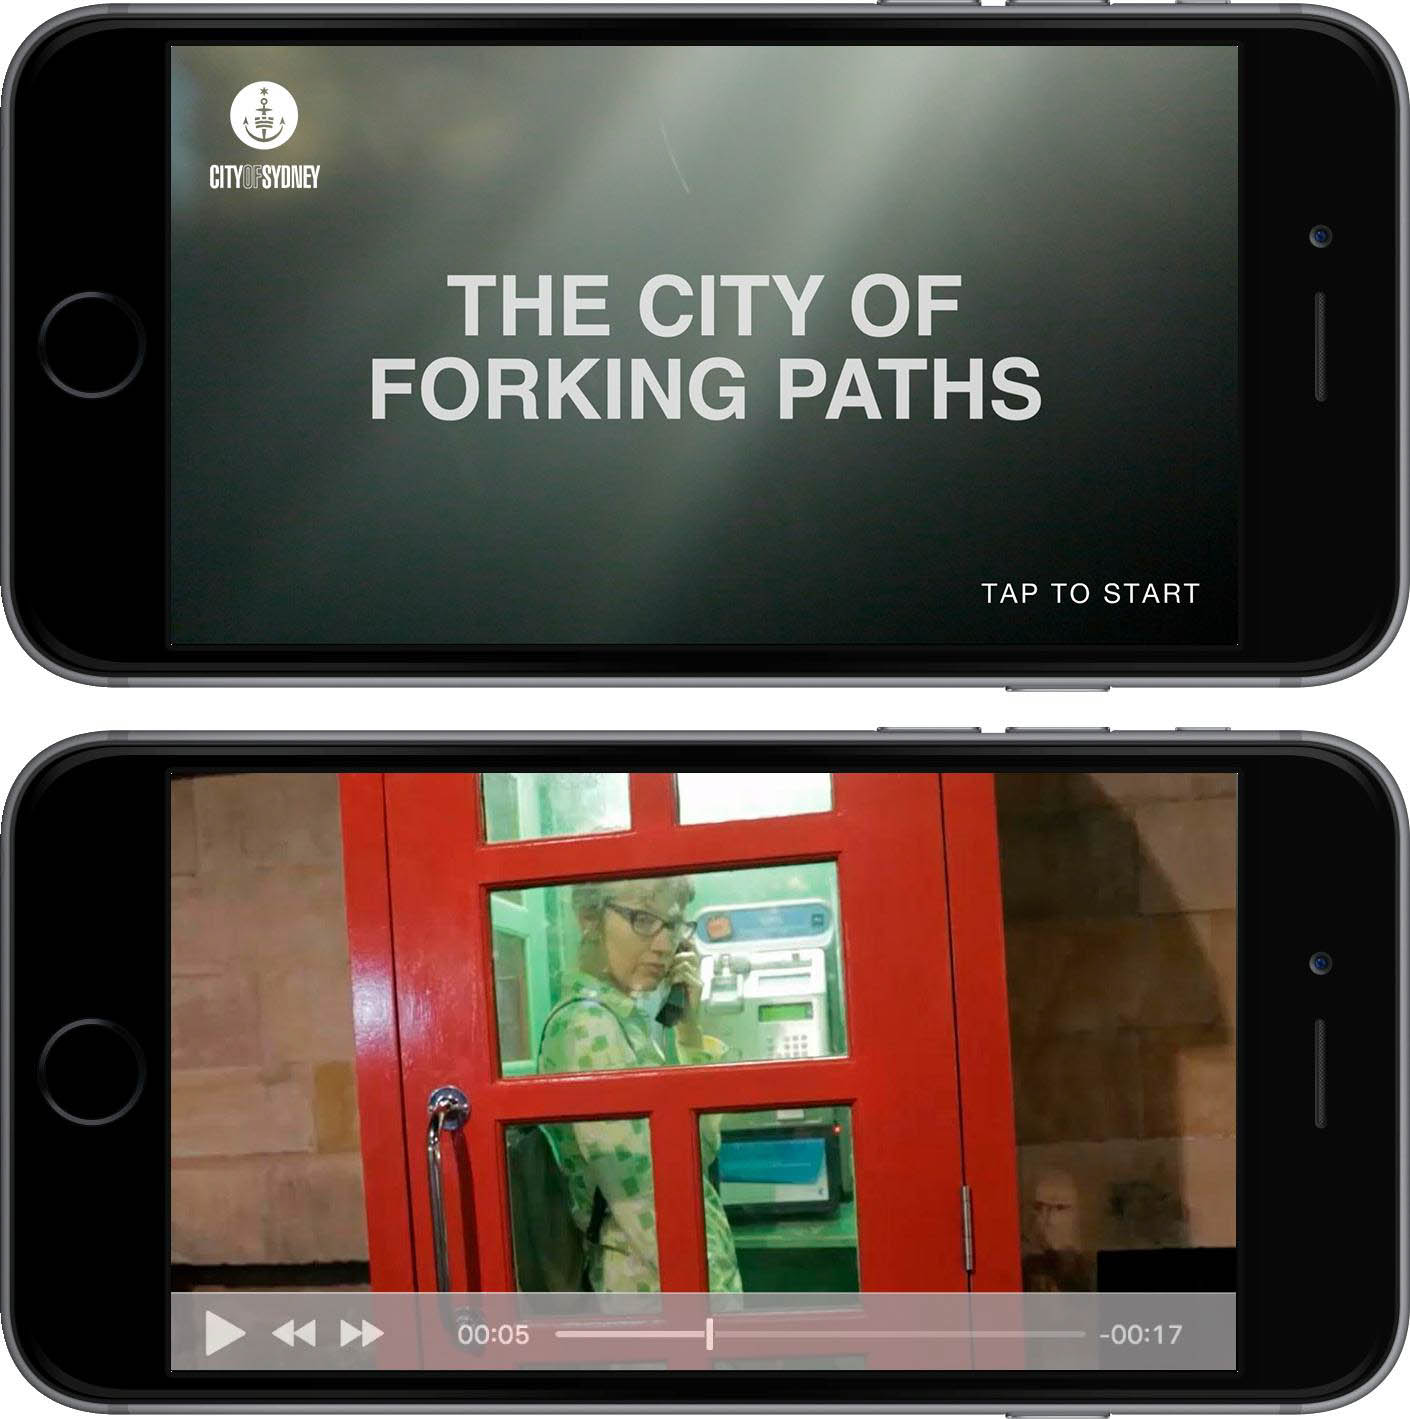 The City of Forking Paths